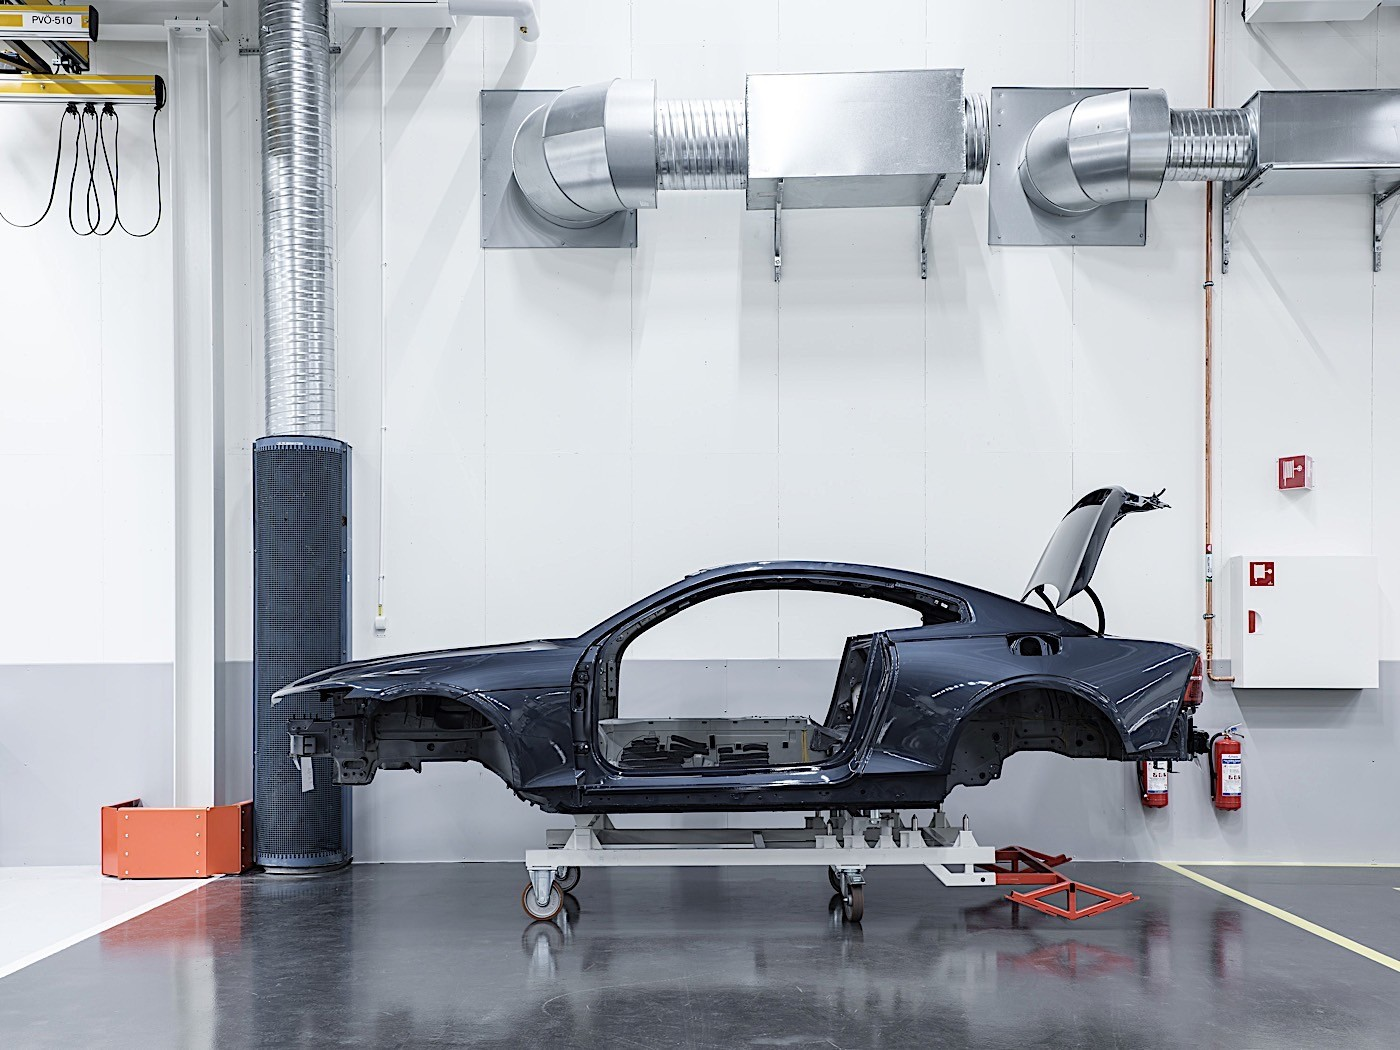 Polestar crash test focuses on carbon body